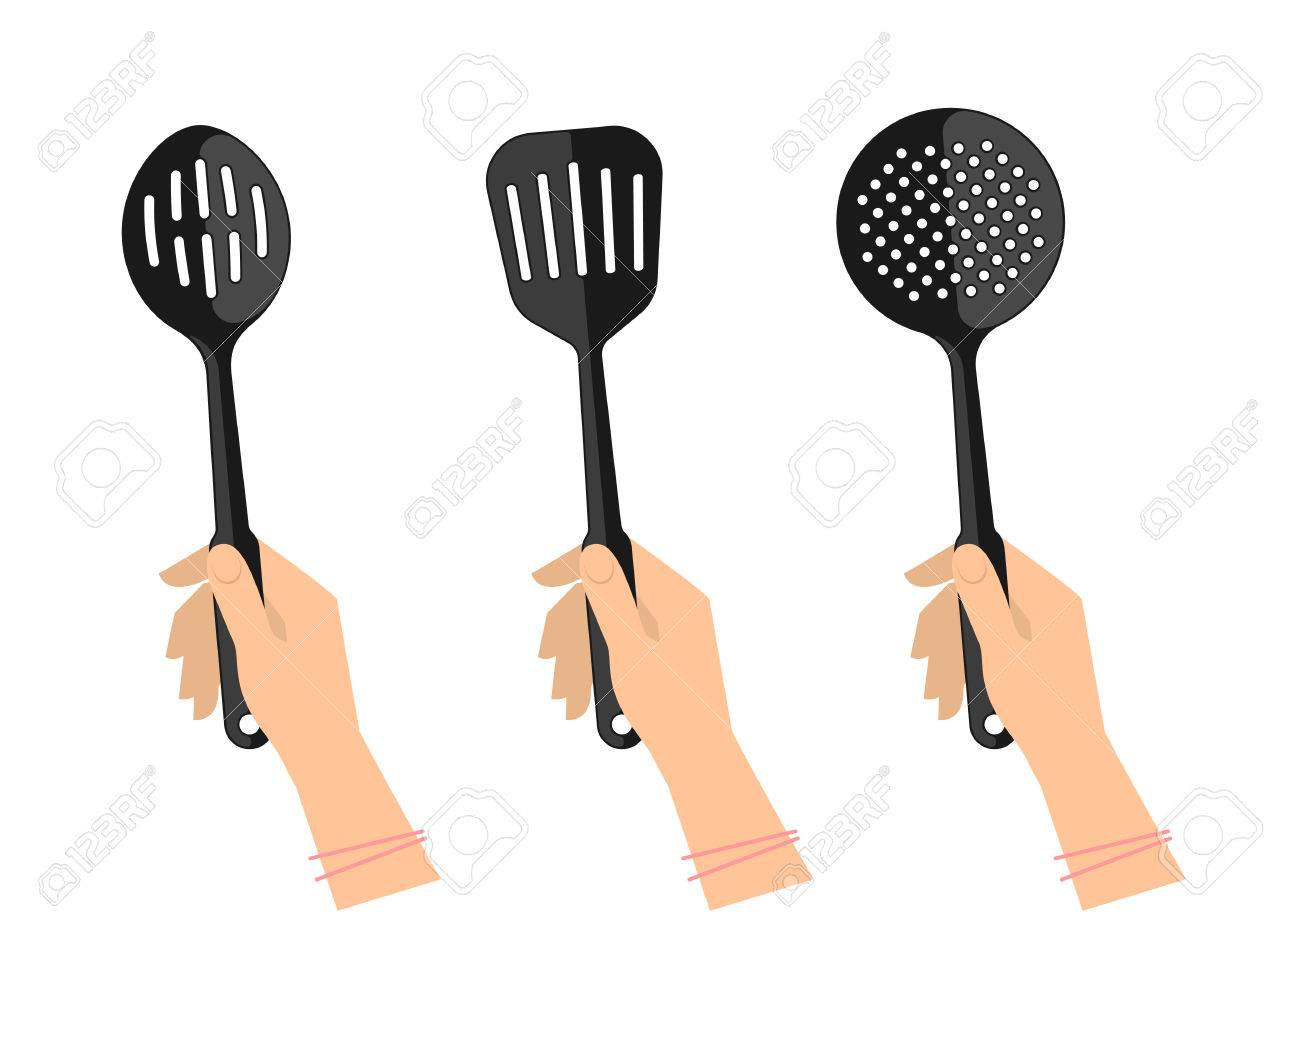 Female Hands With Kitchen Utensils: Slotted Spoon, Spatula And Skimmer.  Flat Illustration Of